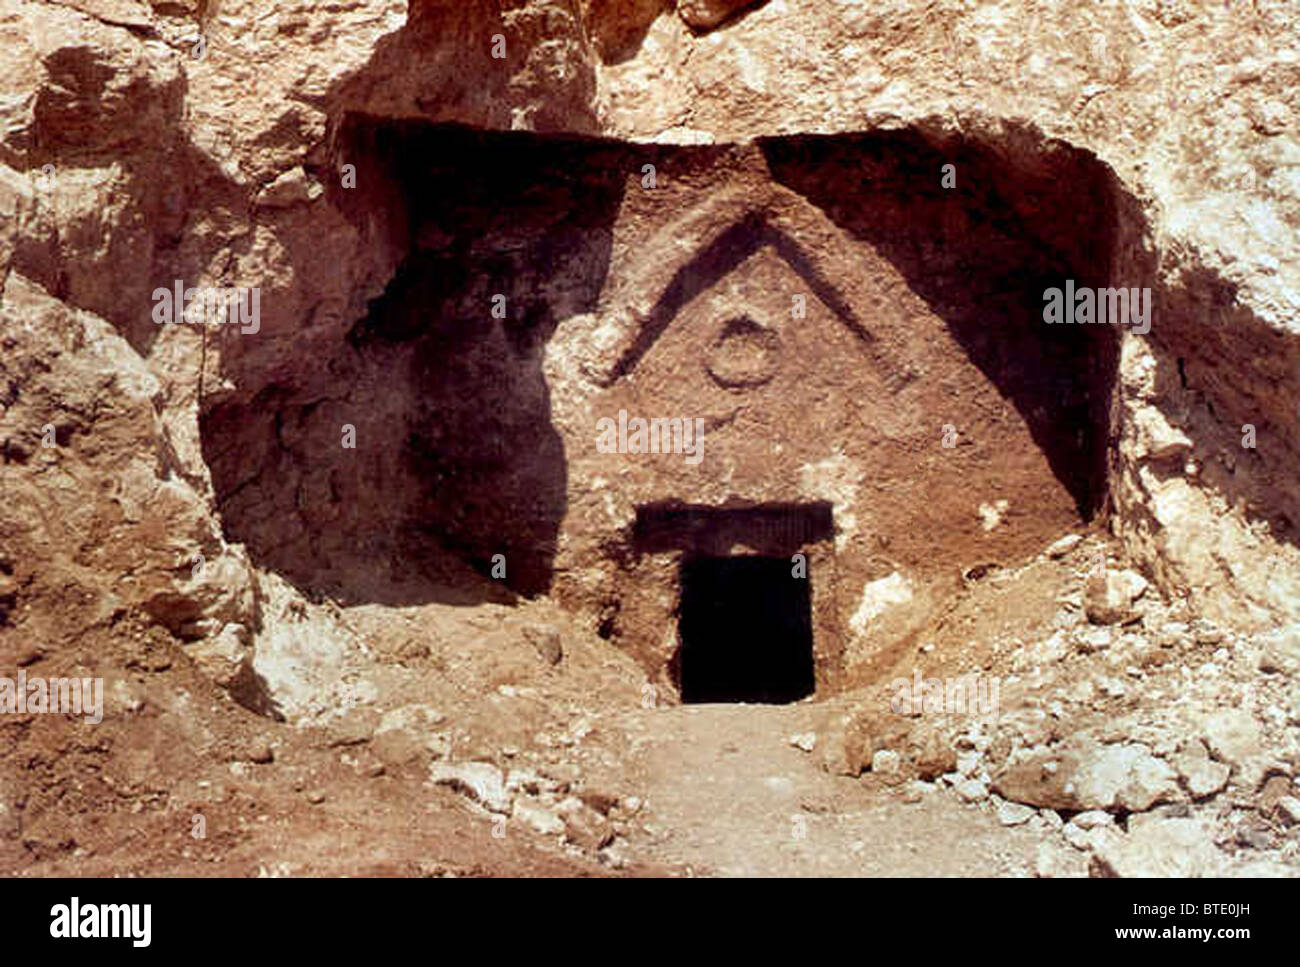 5366. The Talpiot Tomb in Jerusalem in which 10 ossuaries were found. - Stock Image